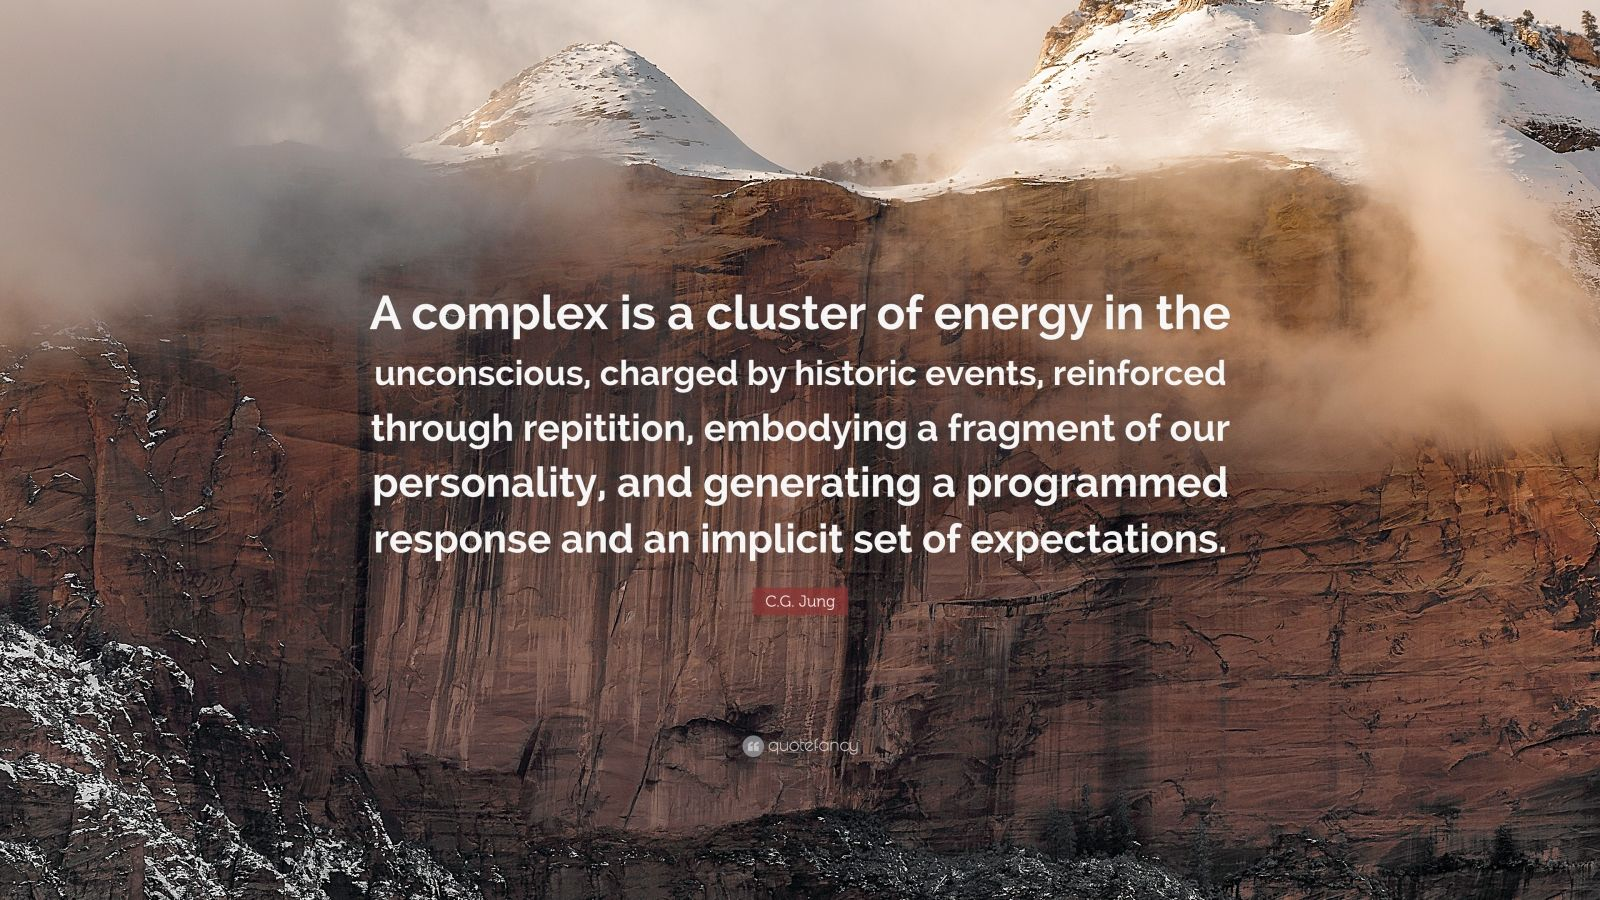 "C.G. Jung Quote: ""A complex is a cluster of energy in the unconscious, charged by historic events, reinforced through repitition, embodying a fragment of our personality, and generating a programmed response and an implicit set of expectations."""